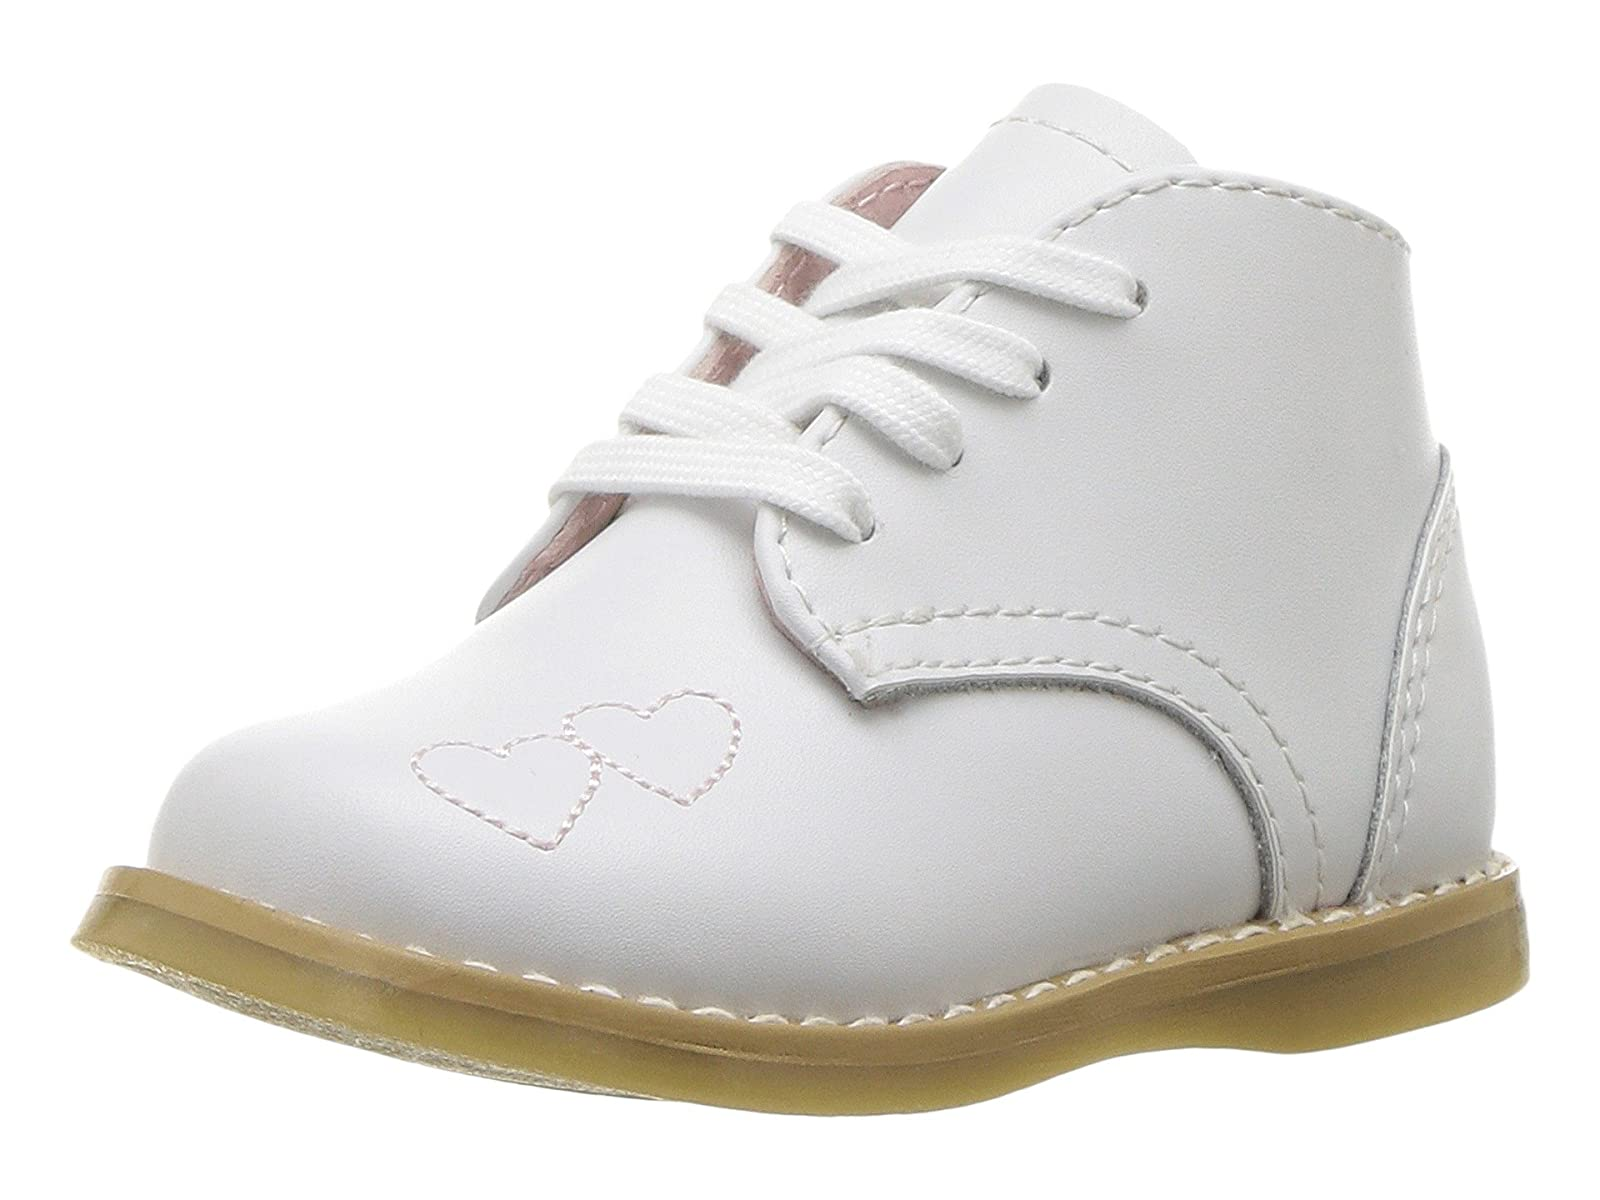 FootMates Tammy (Toddler/Little Kid)Affordable and distinctive shoes